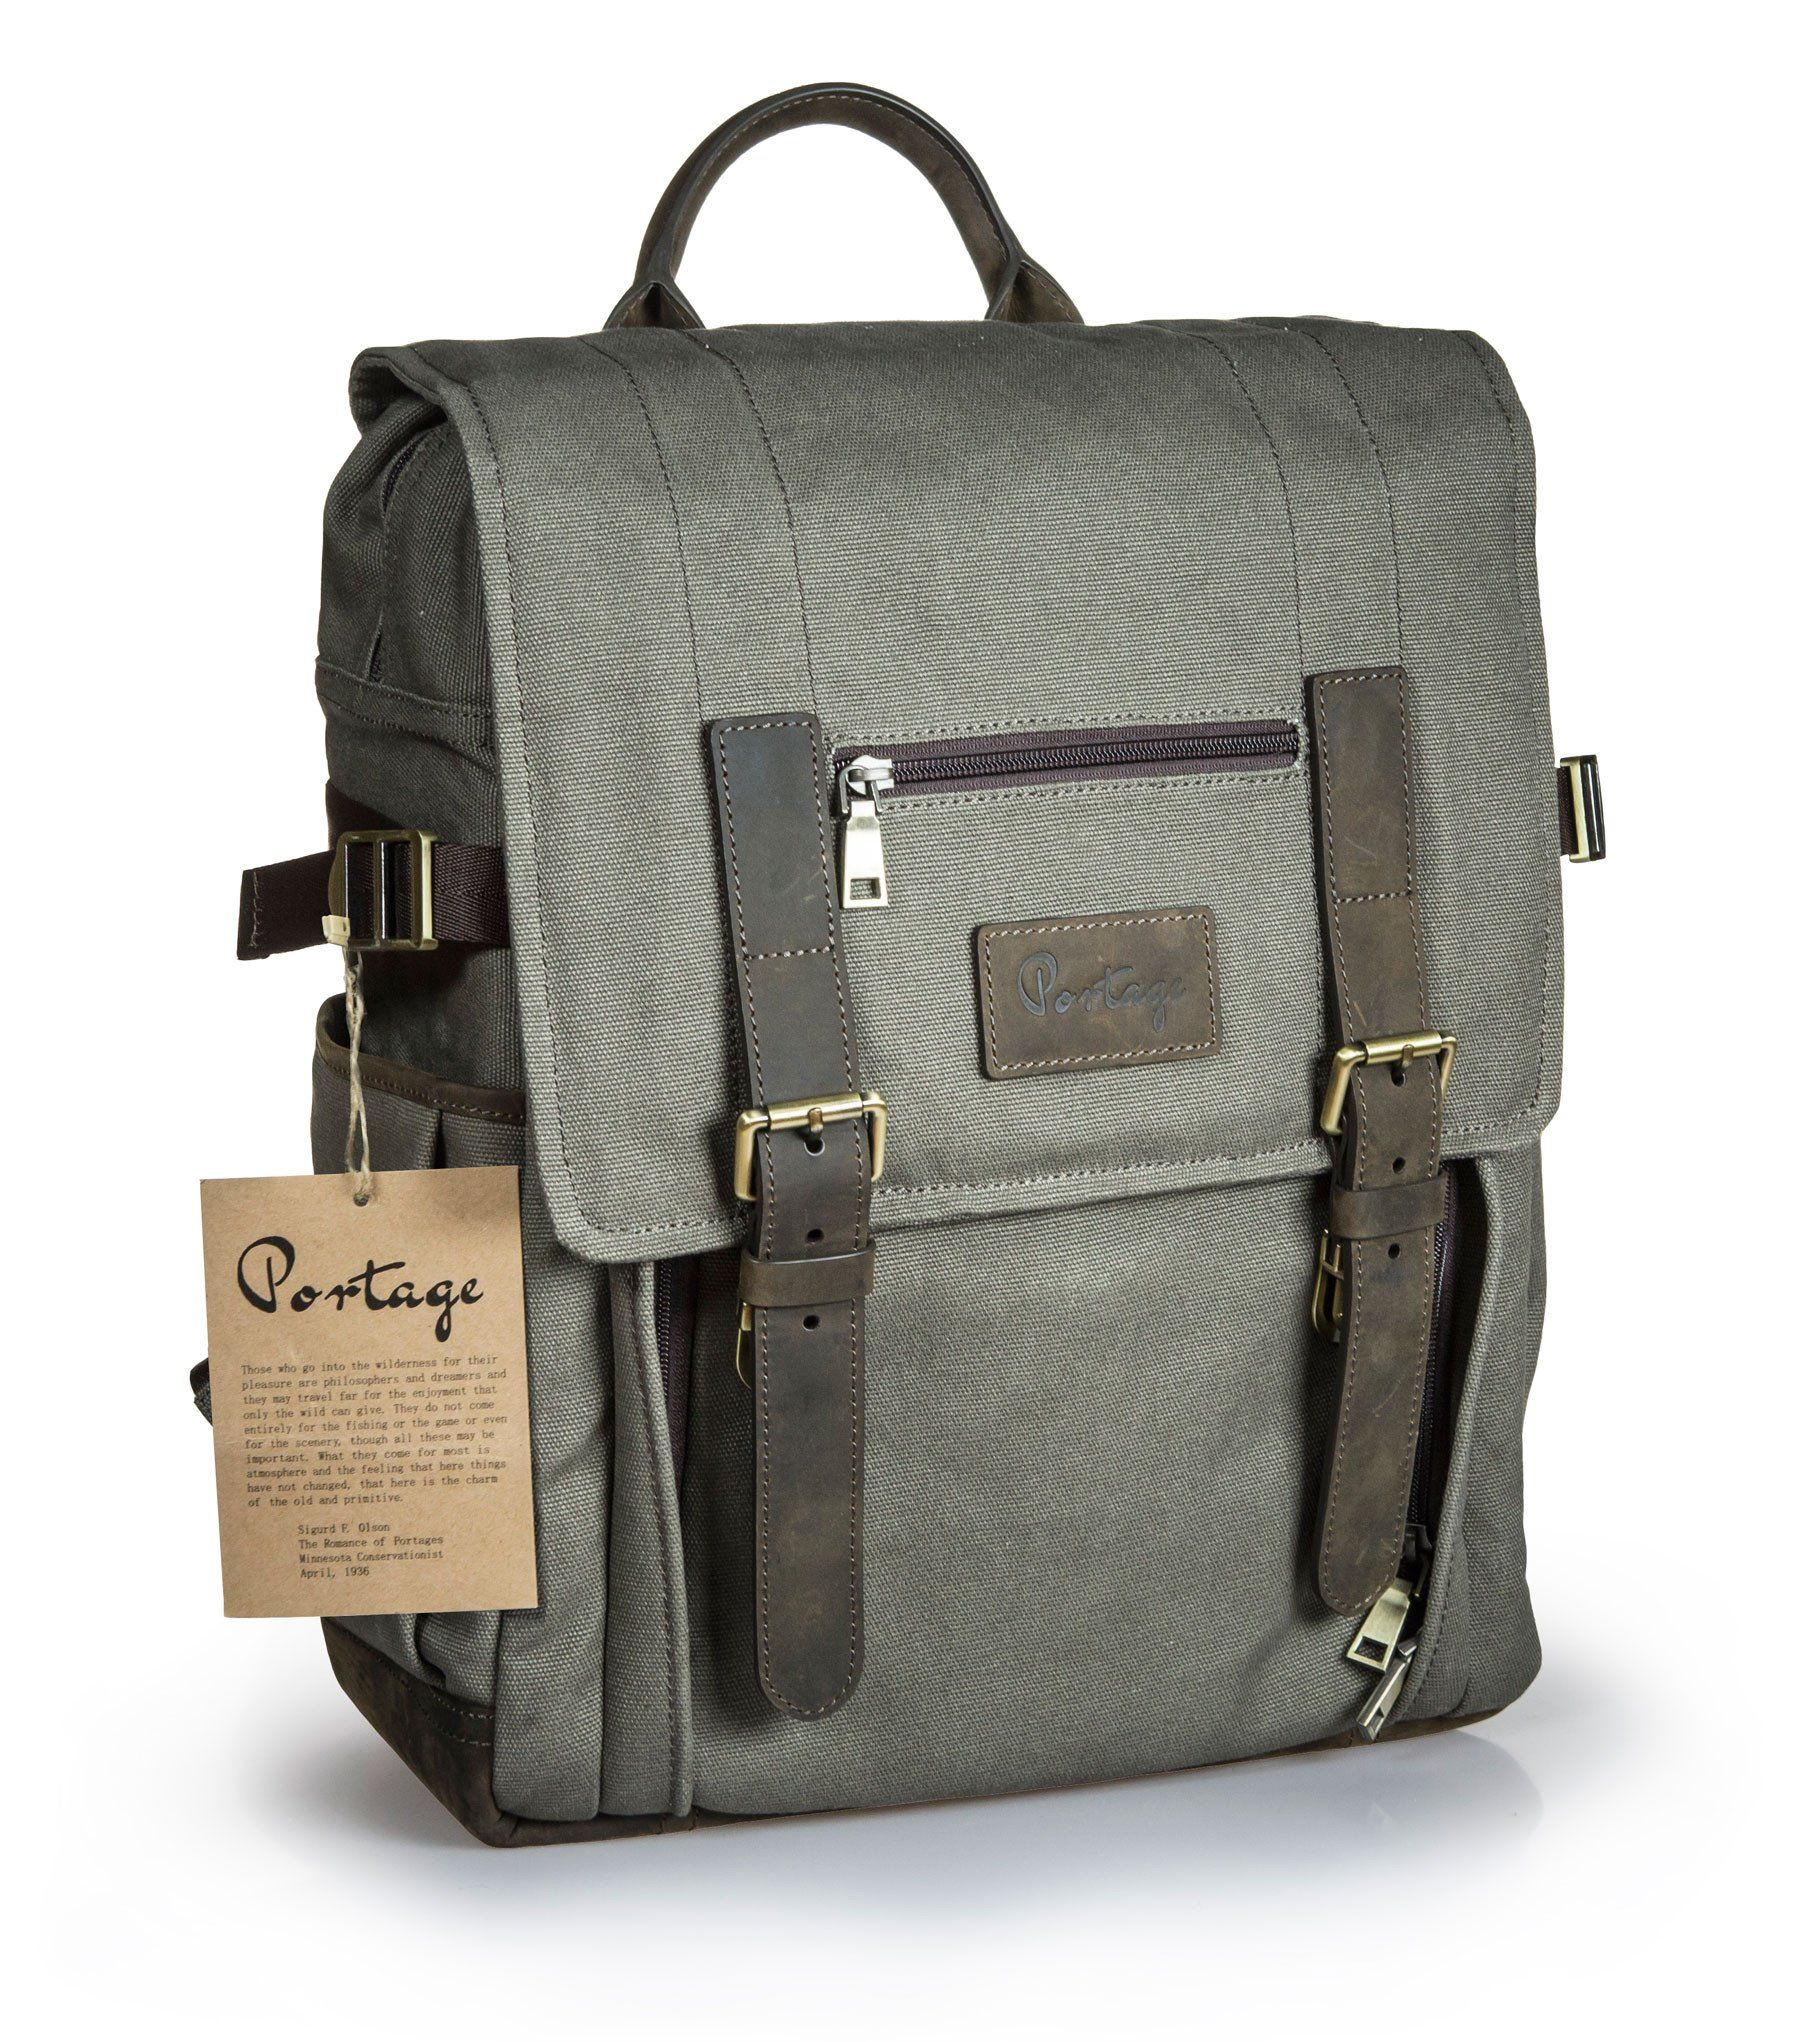 Diy laptop backpack - Portage Kenora Leather Waxed Canvas Backpack For Camera Laptop